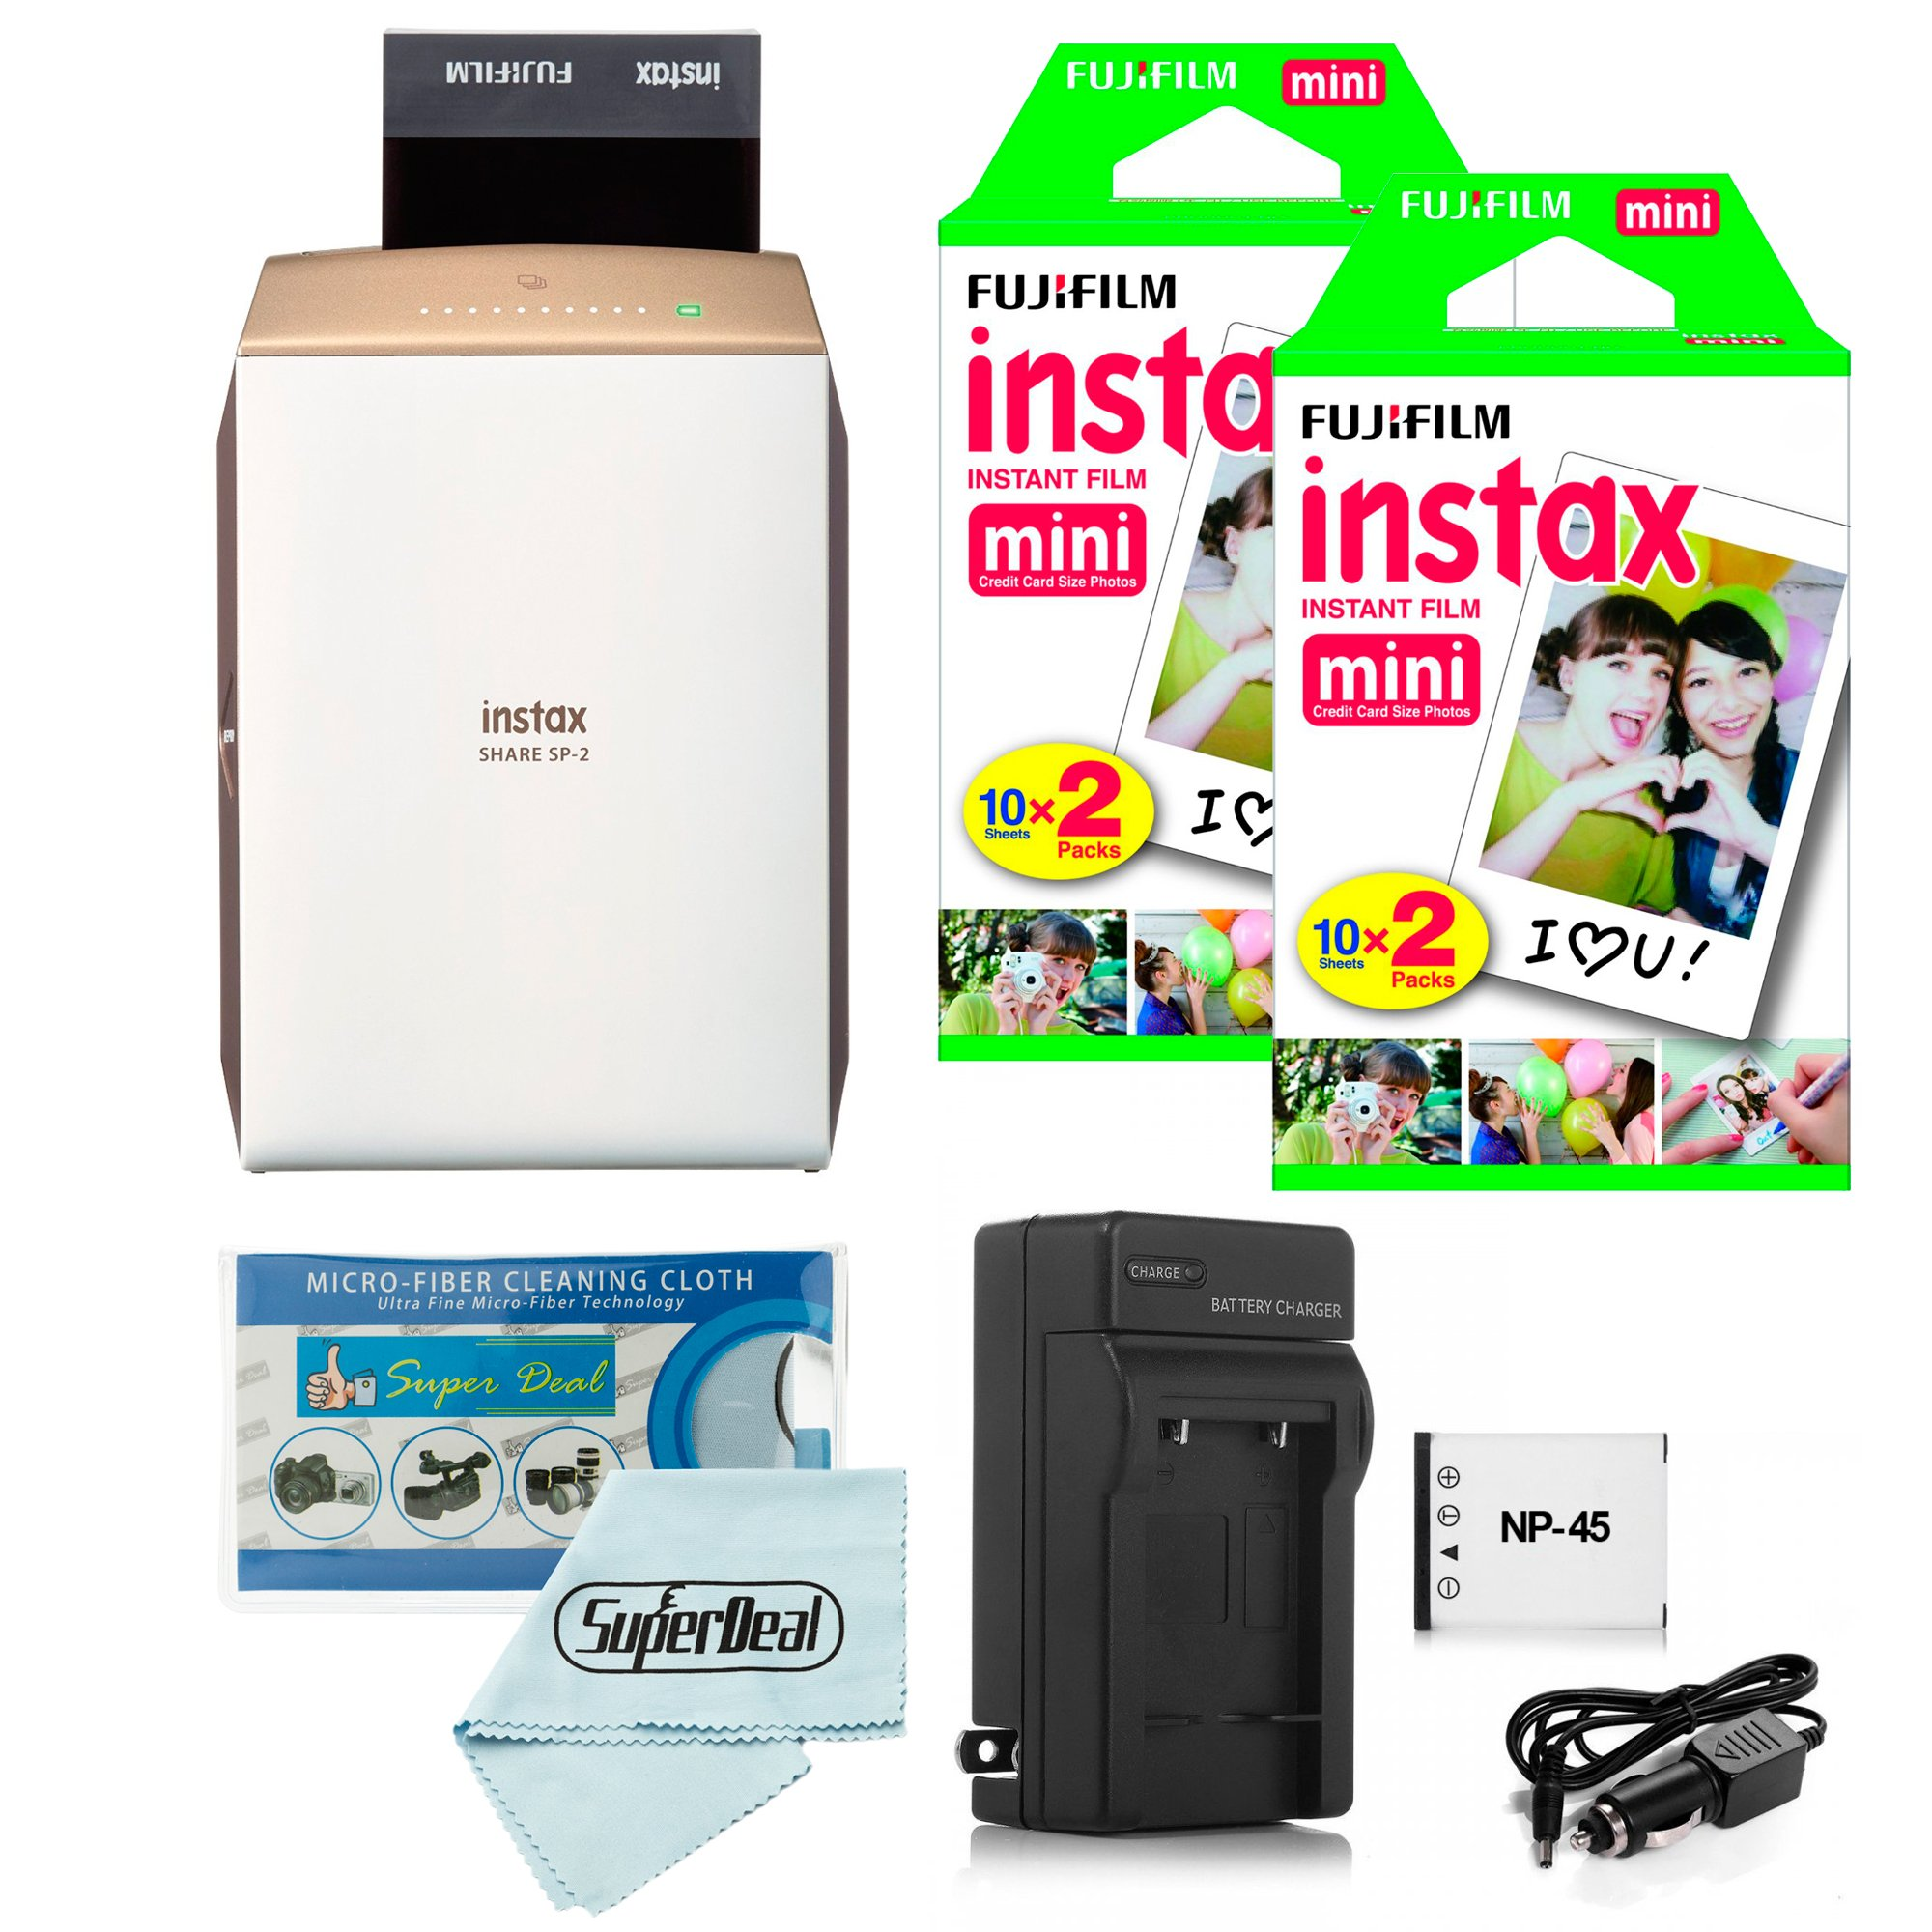 Fujifilm instax SHARE Smartphone Printer SP-2 (Gold) + Fujifilm Mini Twin Pack (40 Shots) + Travel Charger & Extra Battery + Cleaning Cloth by Fujifilm